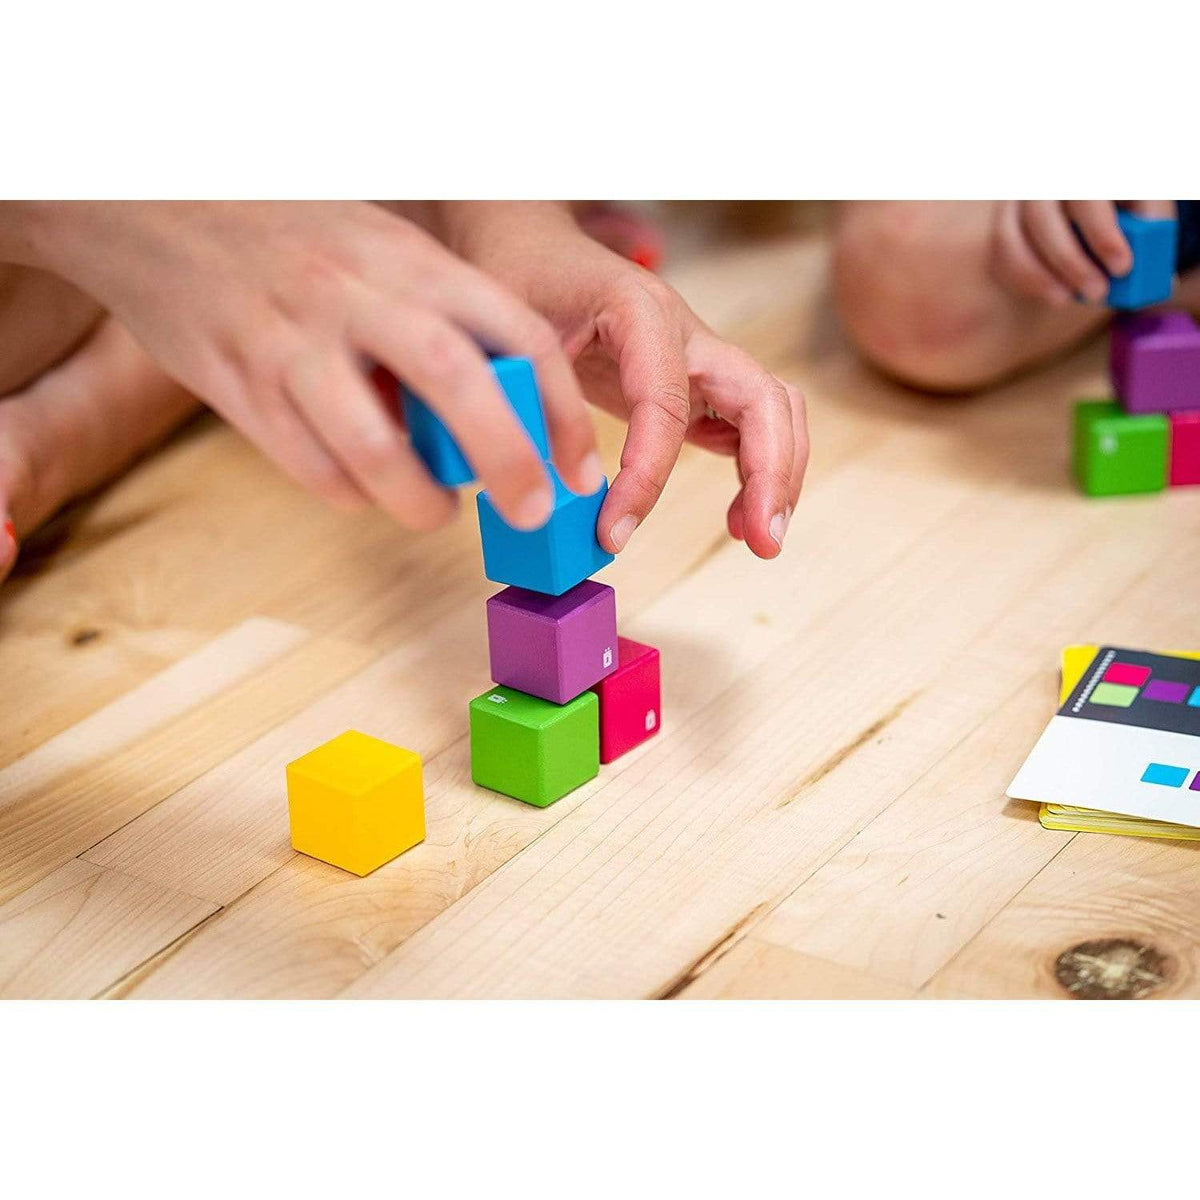 Bllöx Stacking Race Mobi Games Inc. Board Games